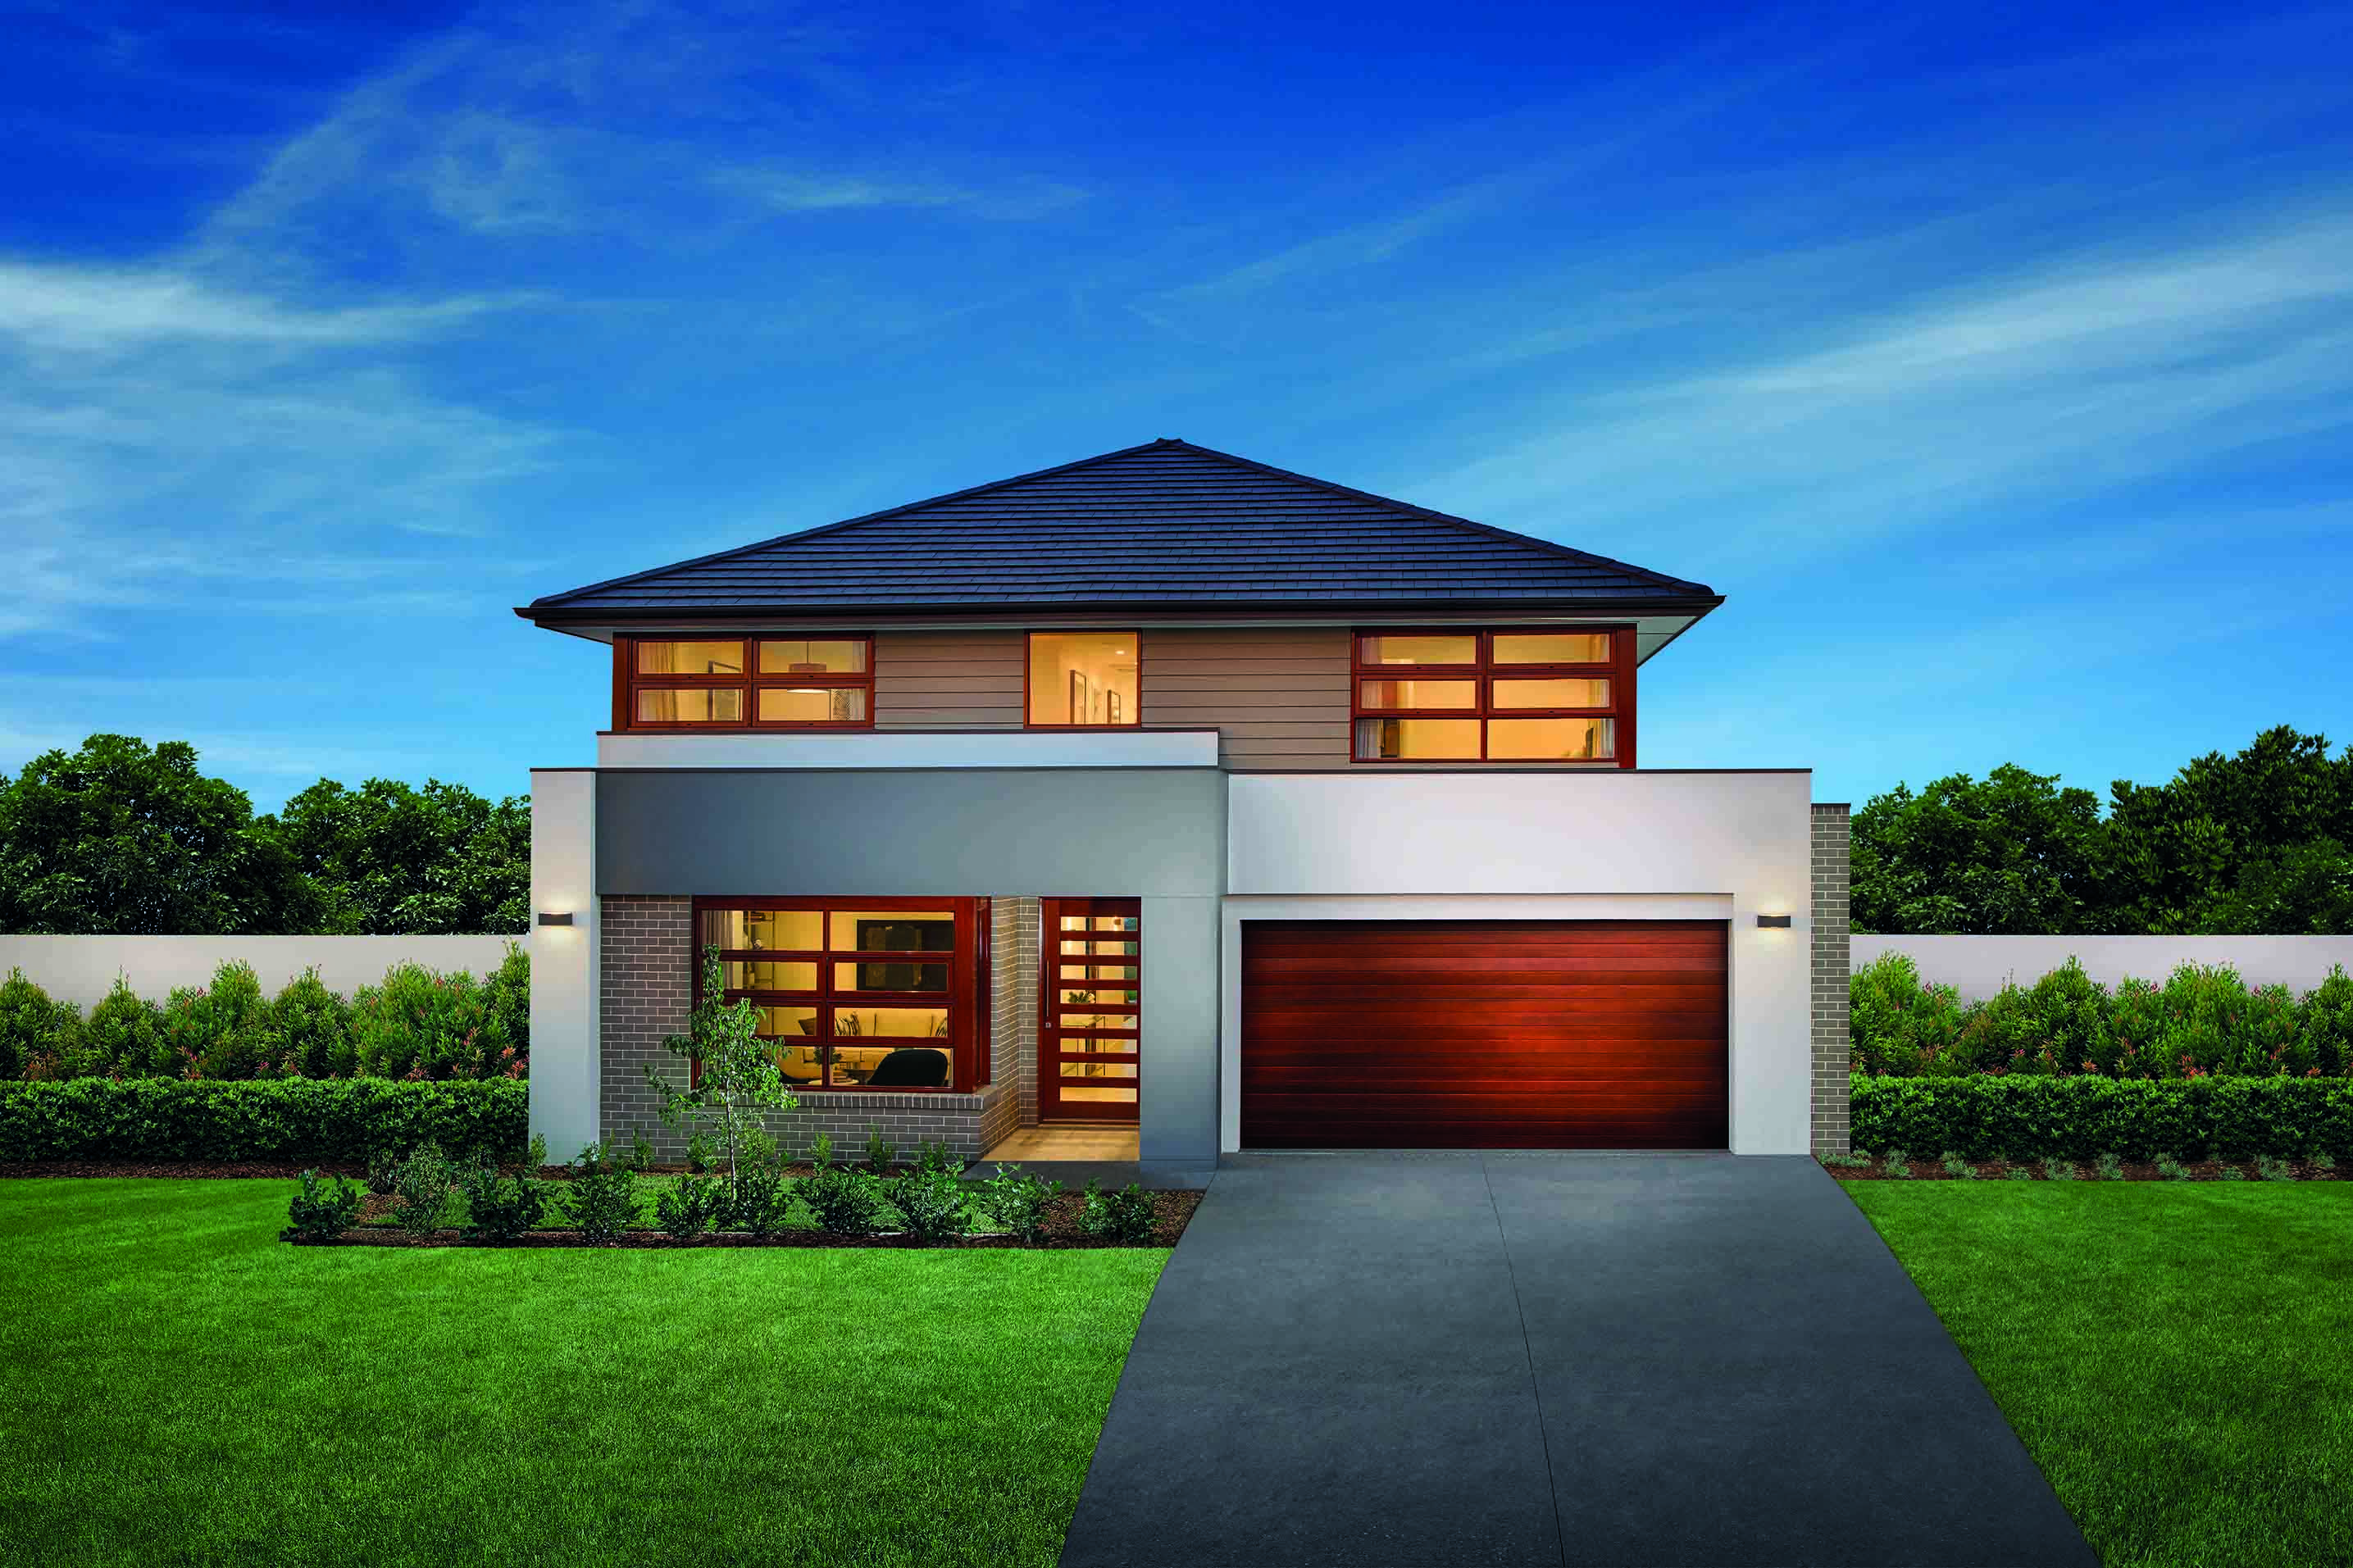 Madison 38 Double storey home design features five bedrooms